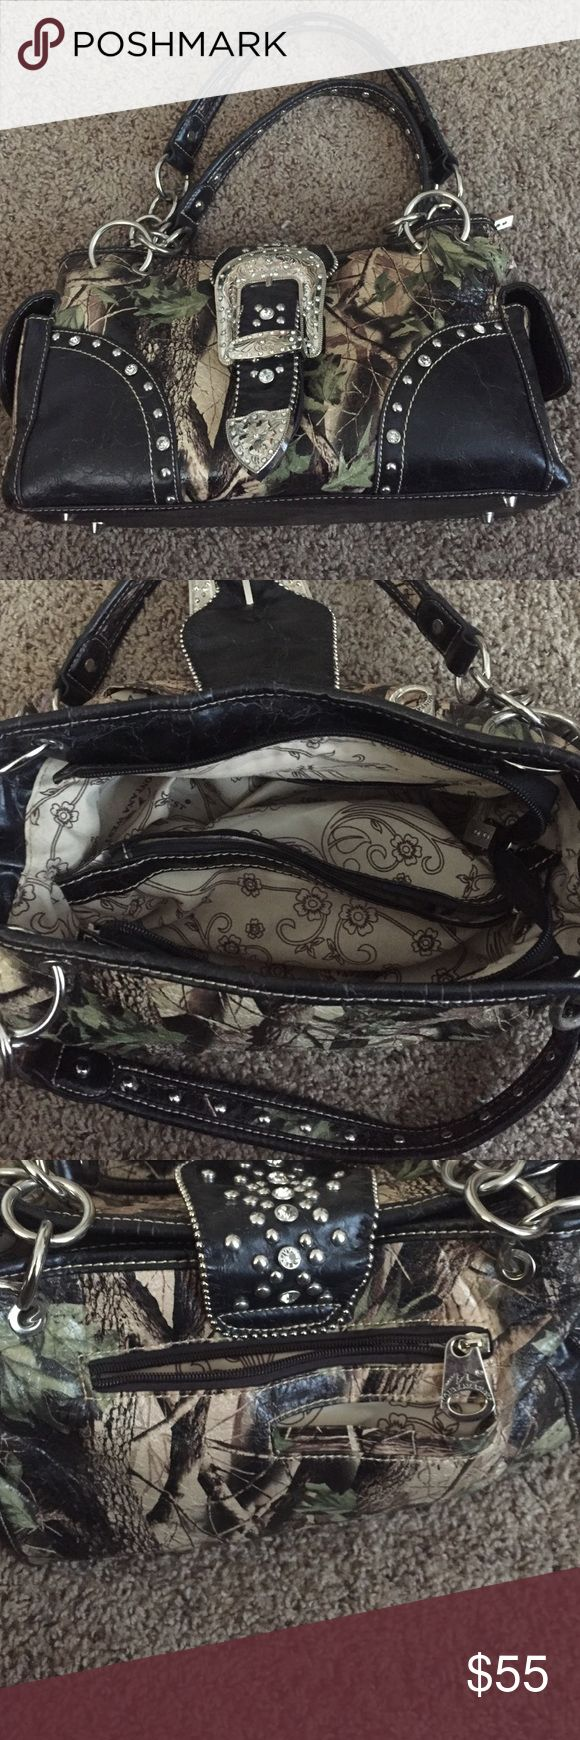 Camo purse!! In very good condition, no jewels missing, all zippers work, lots of space on the inside!! 🔹 make offer!!! 🔹 Montana West Bags Shoulder Bags